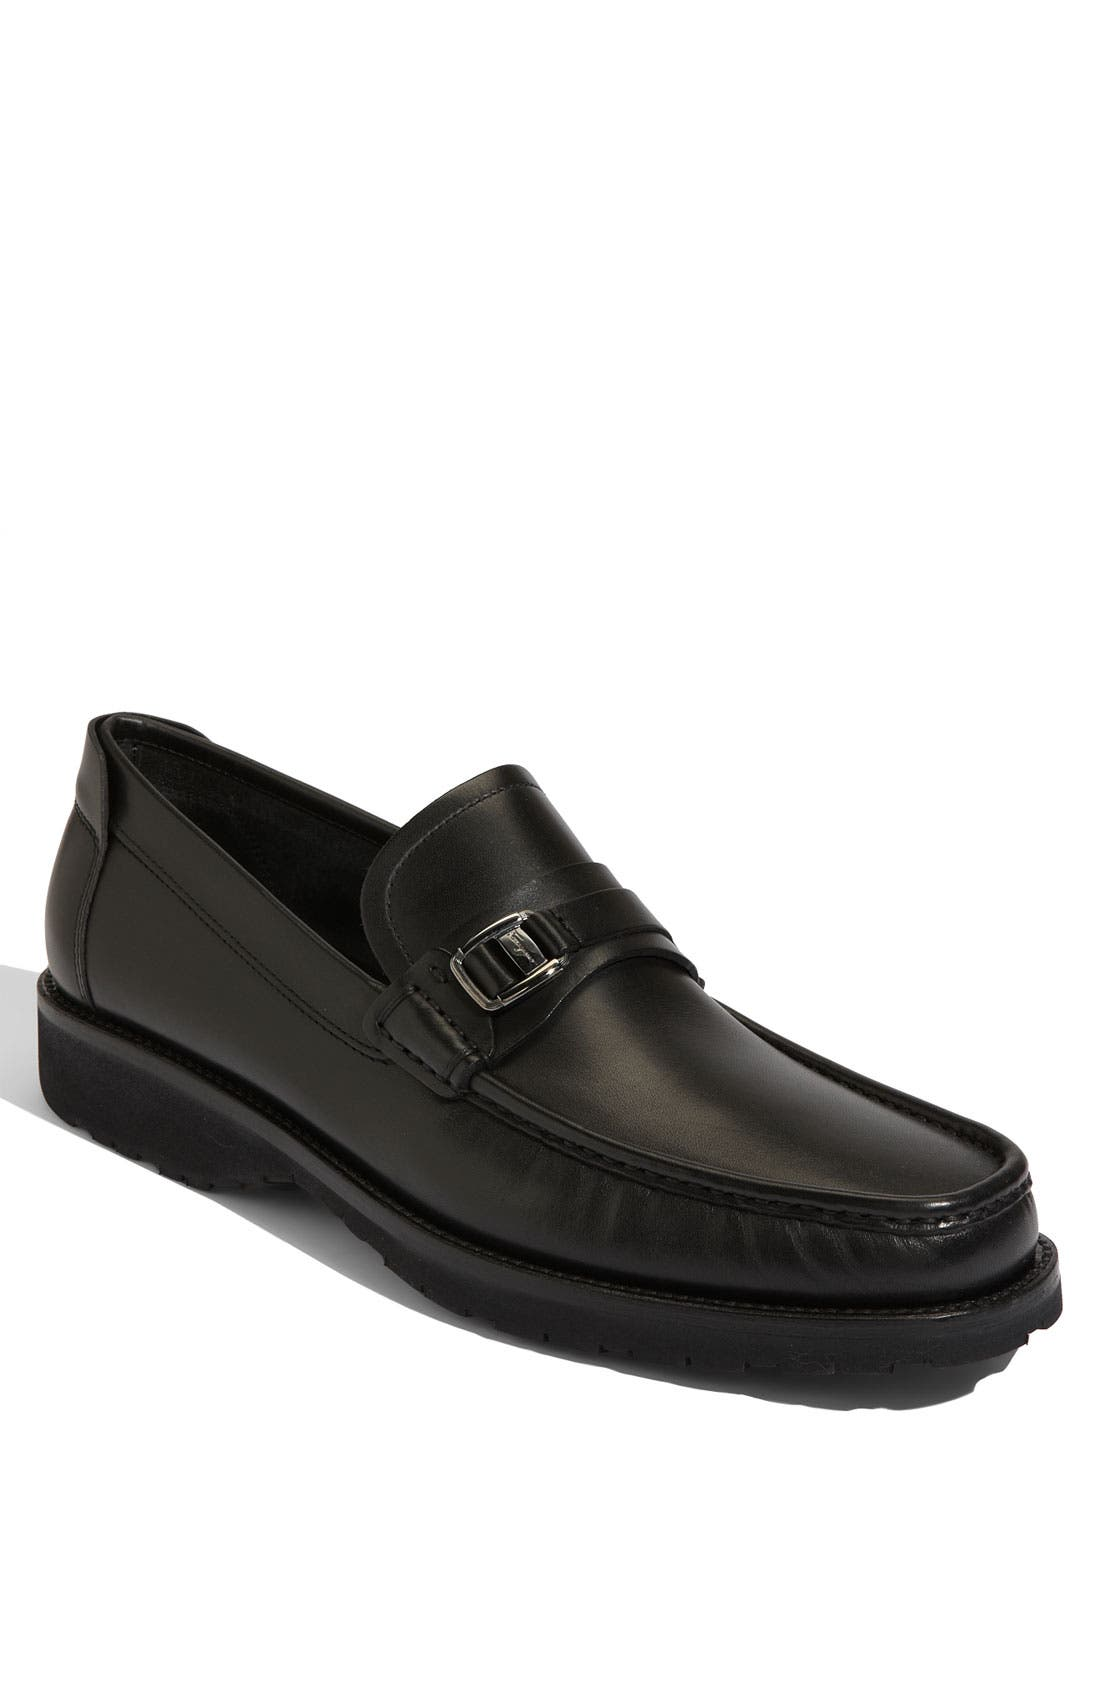 Main Image - Salvatore Ferragamo 'Fidenza' Loafer (Online Only)